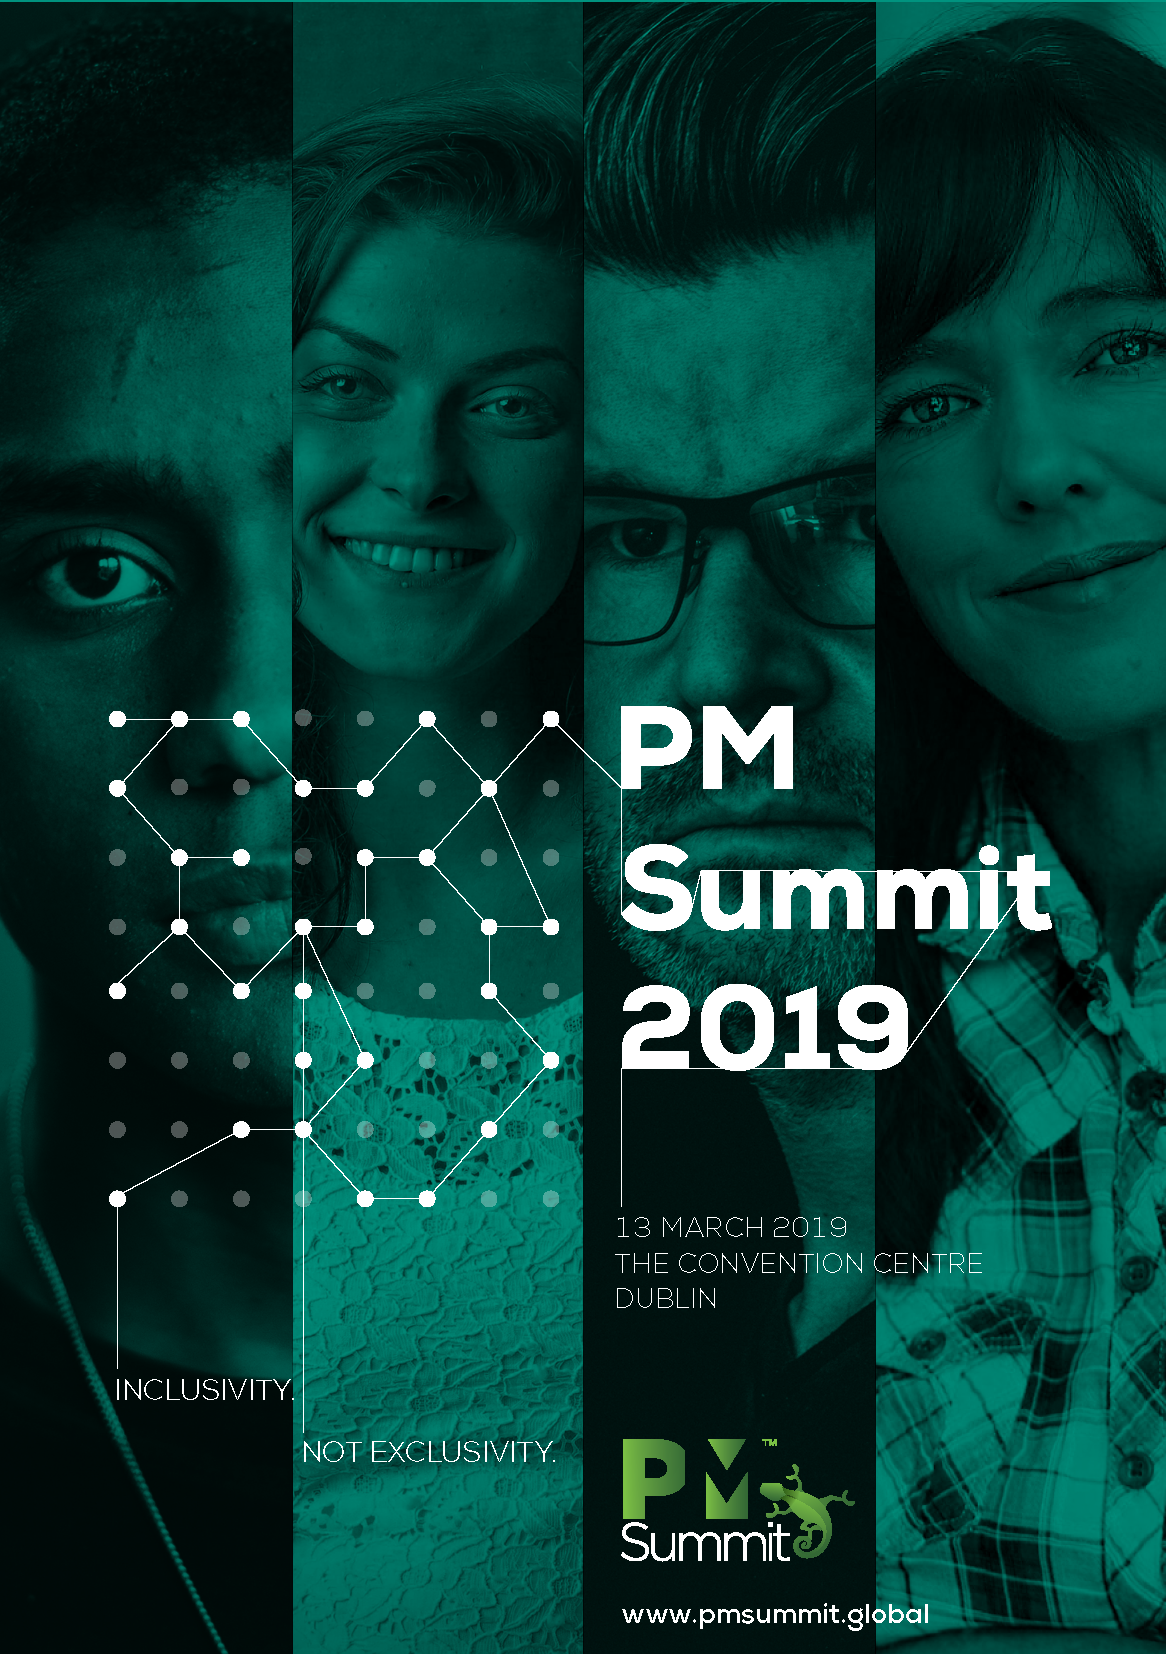 PM Summit 2019